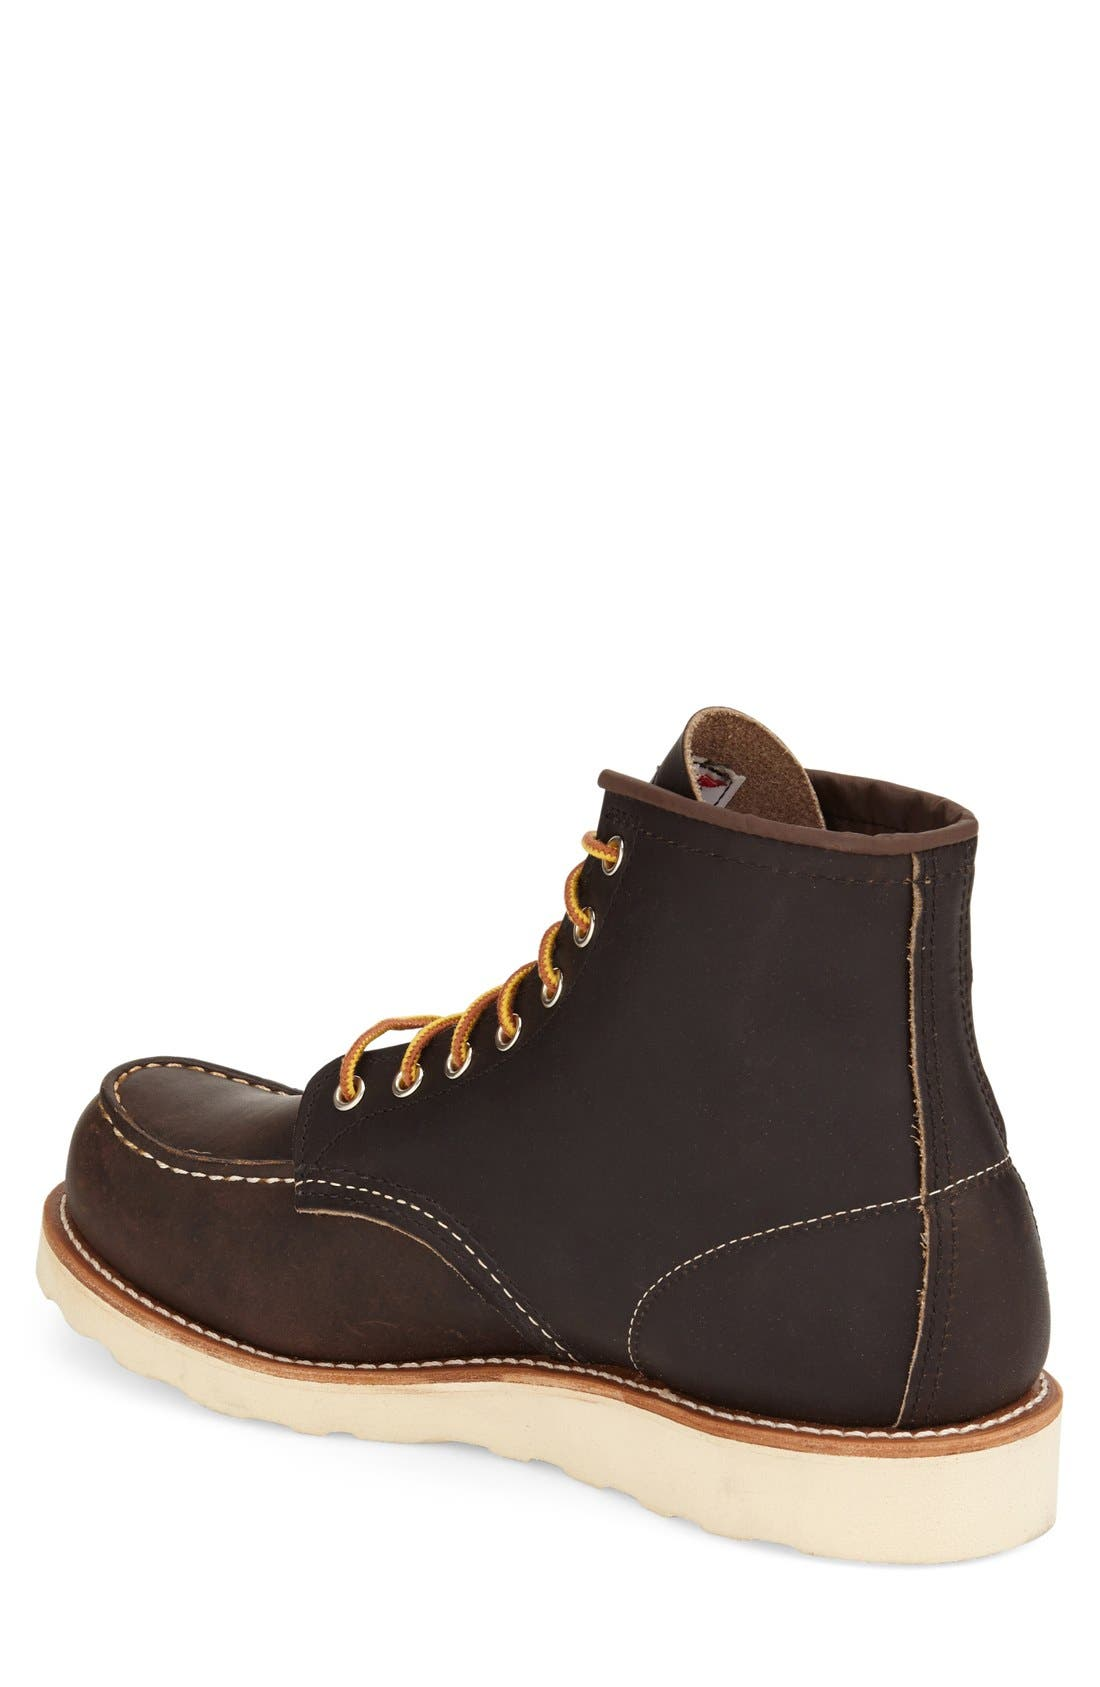 6 Inch Moc Toe Boot,                             Alternate thumbnail 2, color,                             200